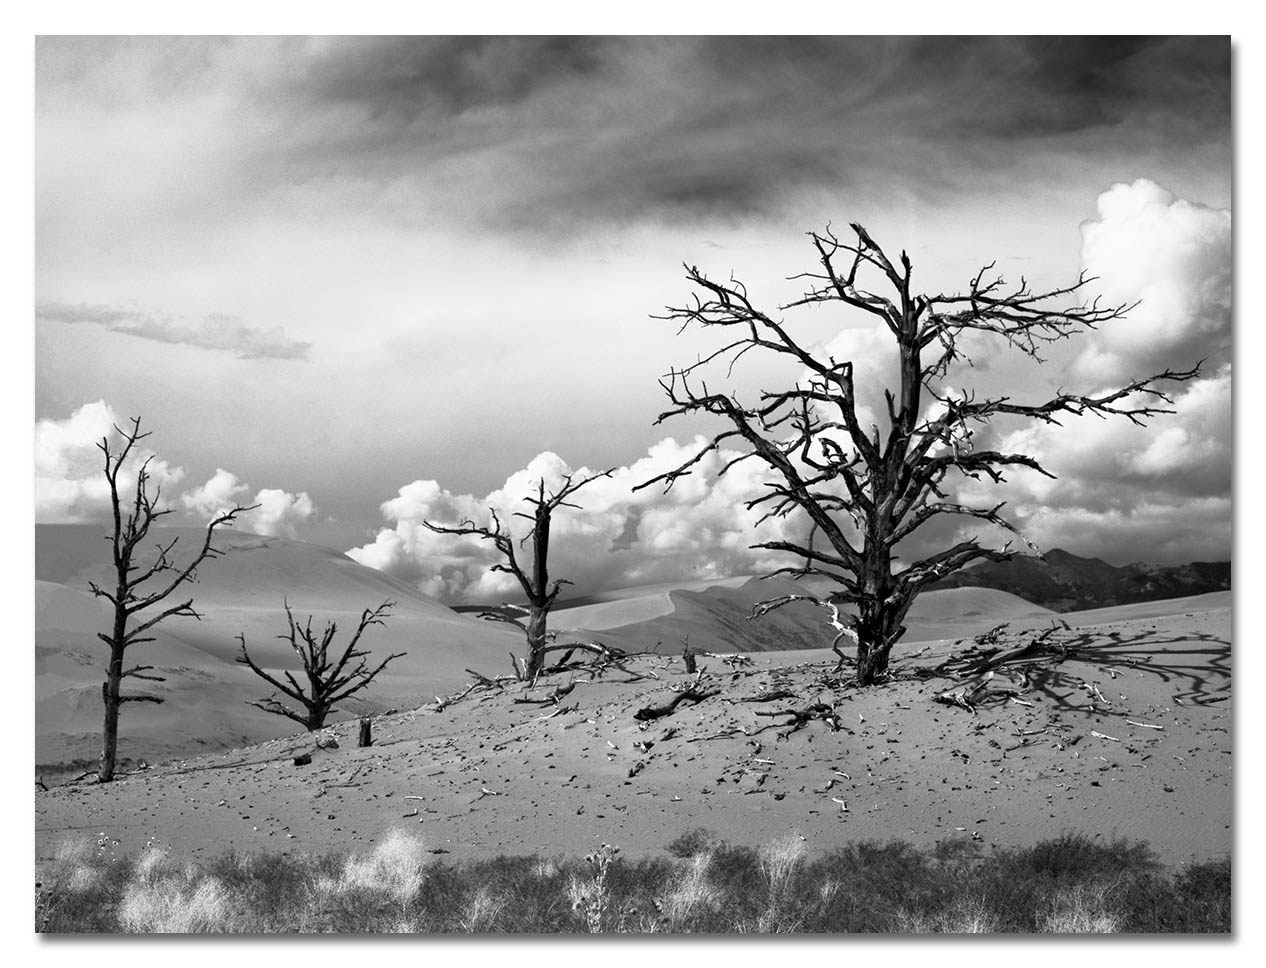 94-9-3 Sanddunes, ghost trees, 1600scan_web